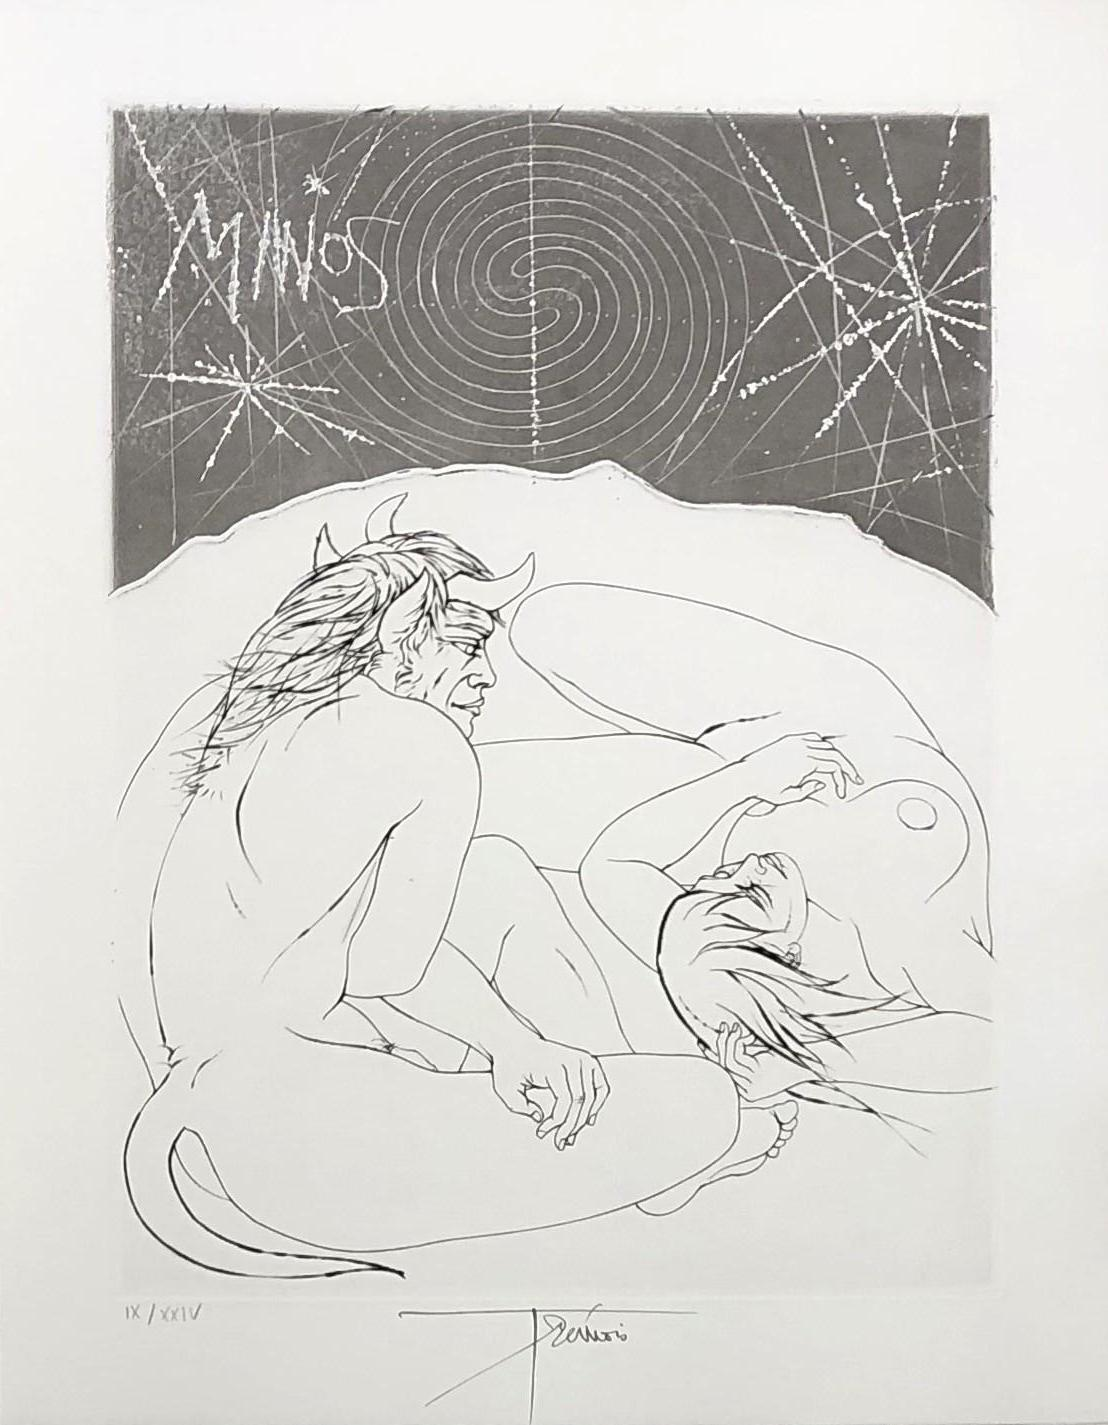 Minos and A Naked Woman - Original etching handsigned and numbered